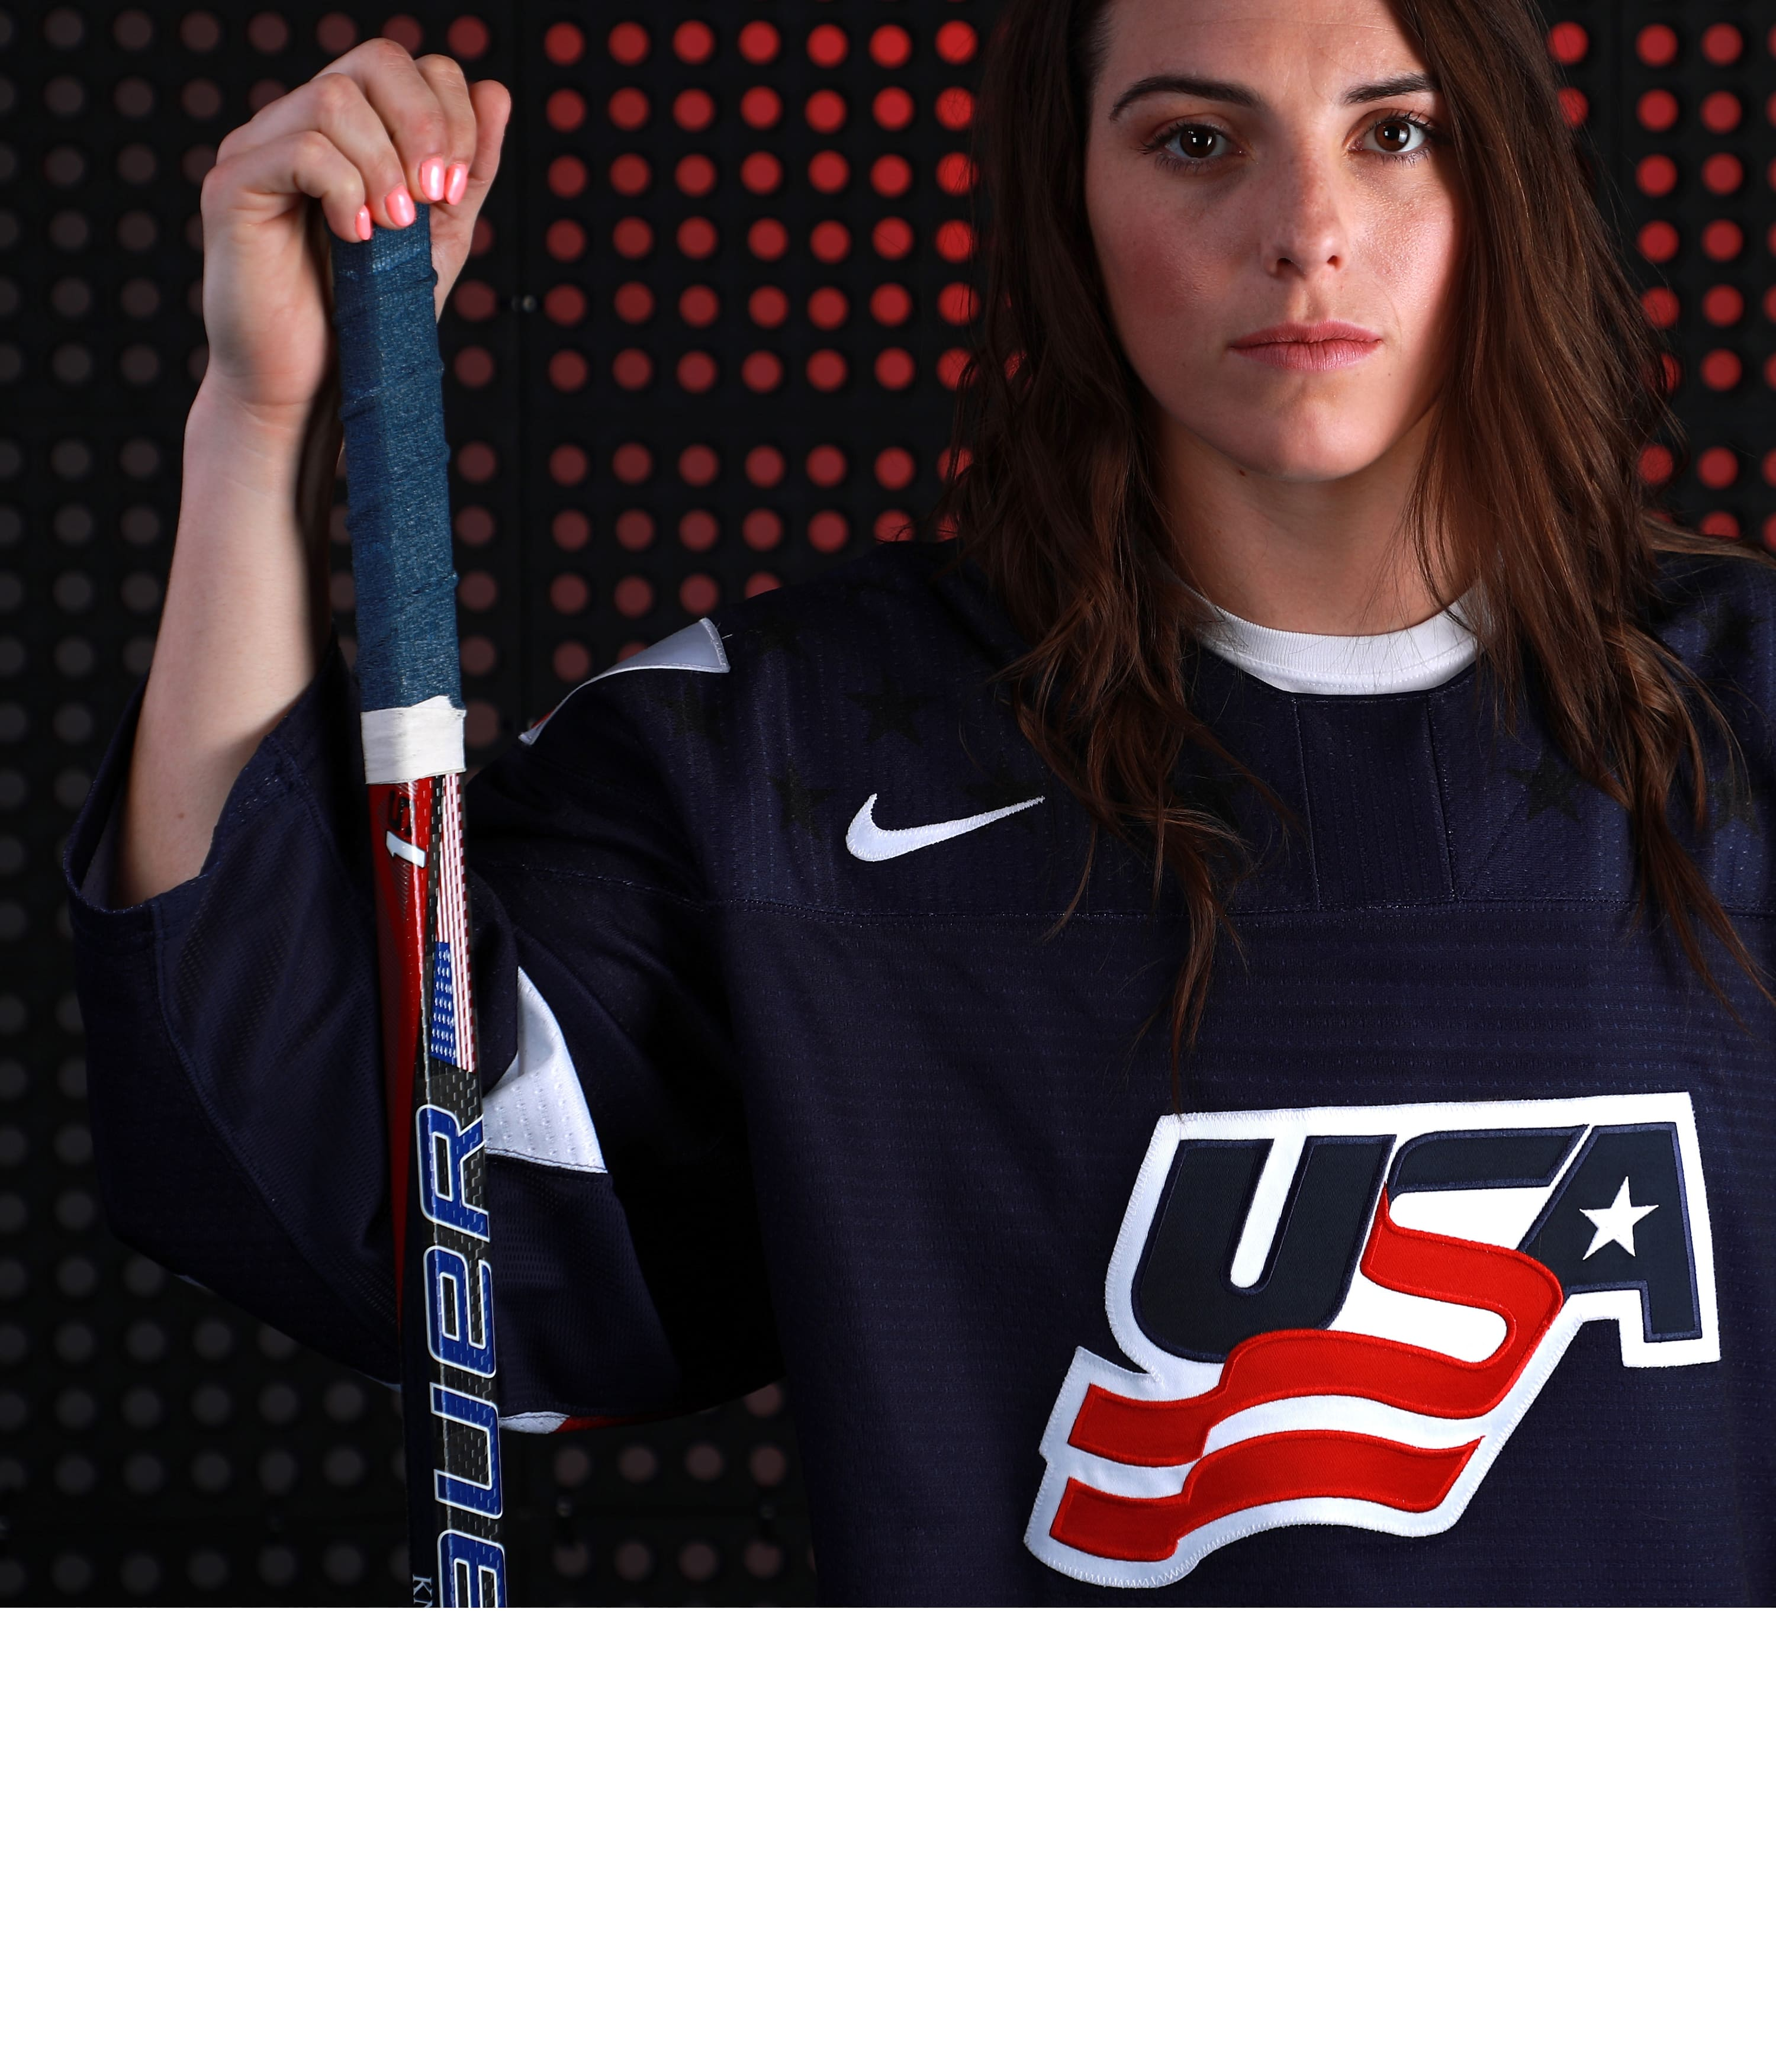 We changed women's hockey